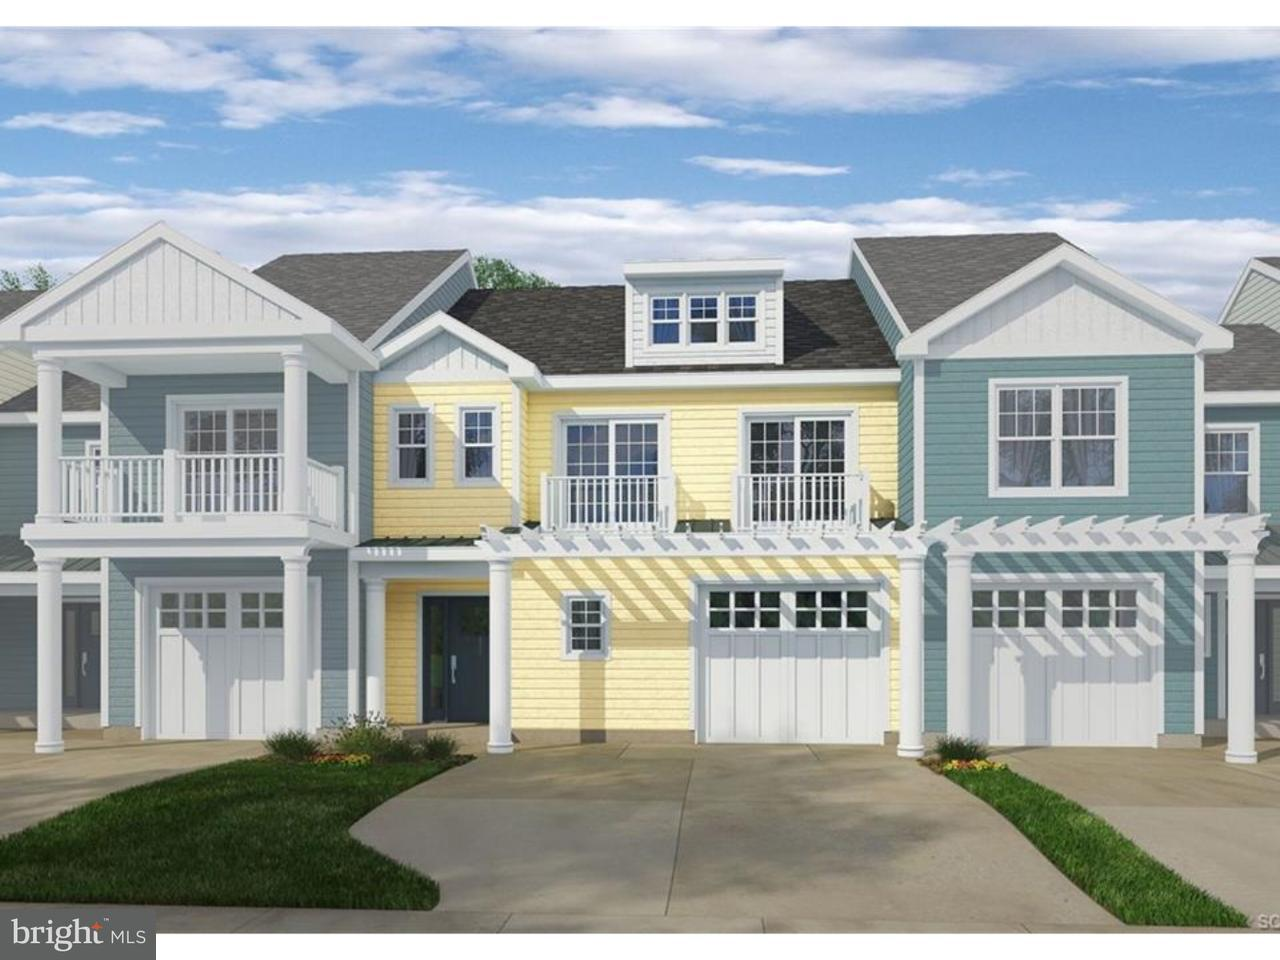 Townhouse for Sale at 36215 GLENVEAGH RD #UNIT 3 Selbyville, Delaware 19975 United States